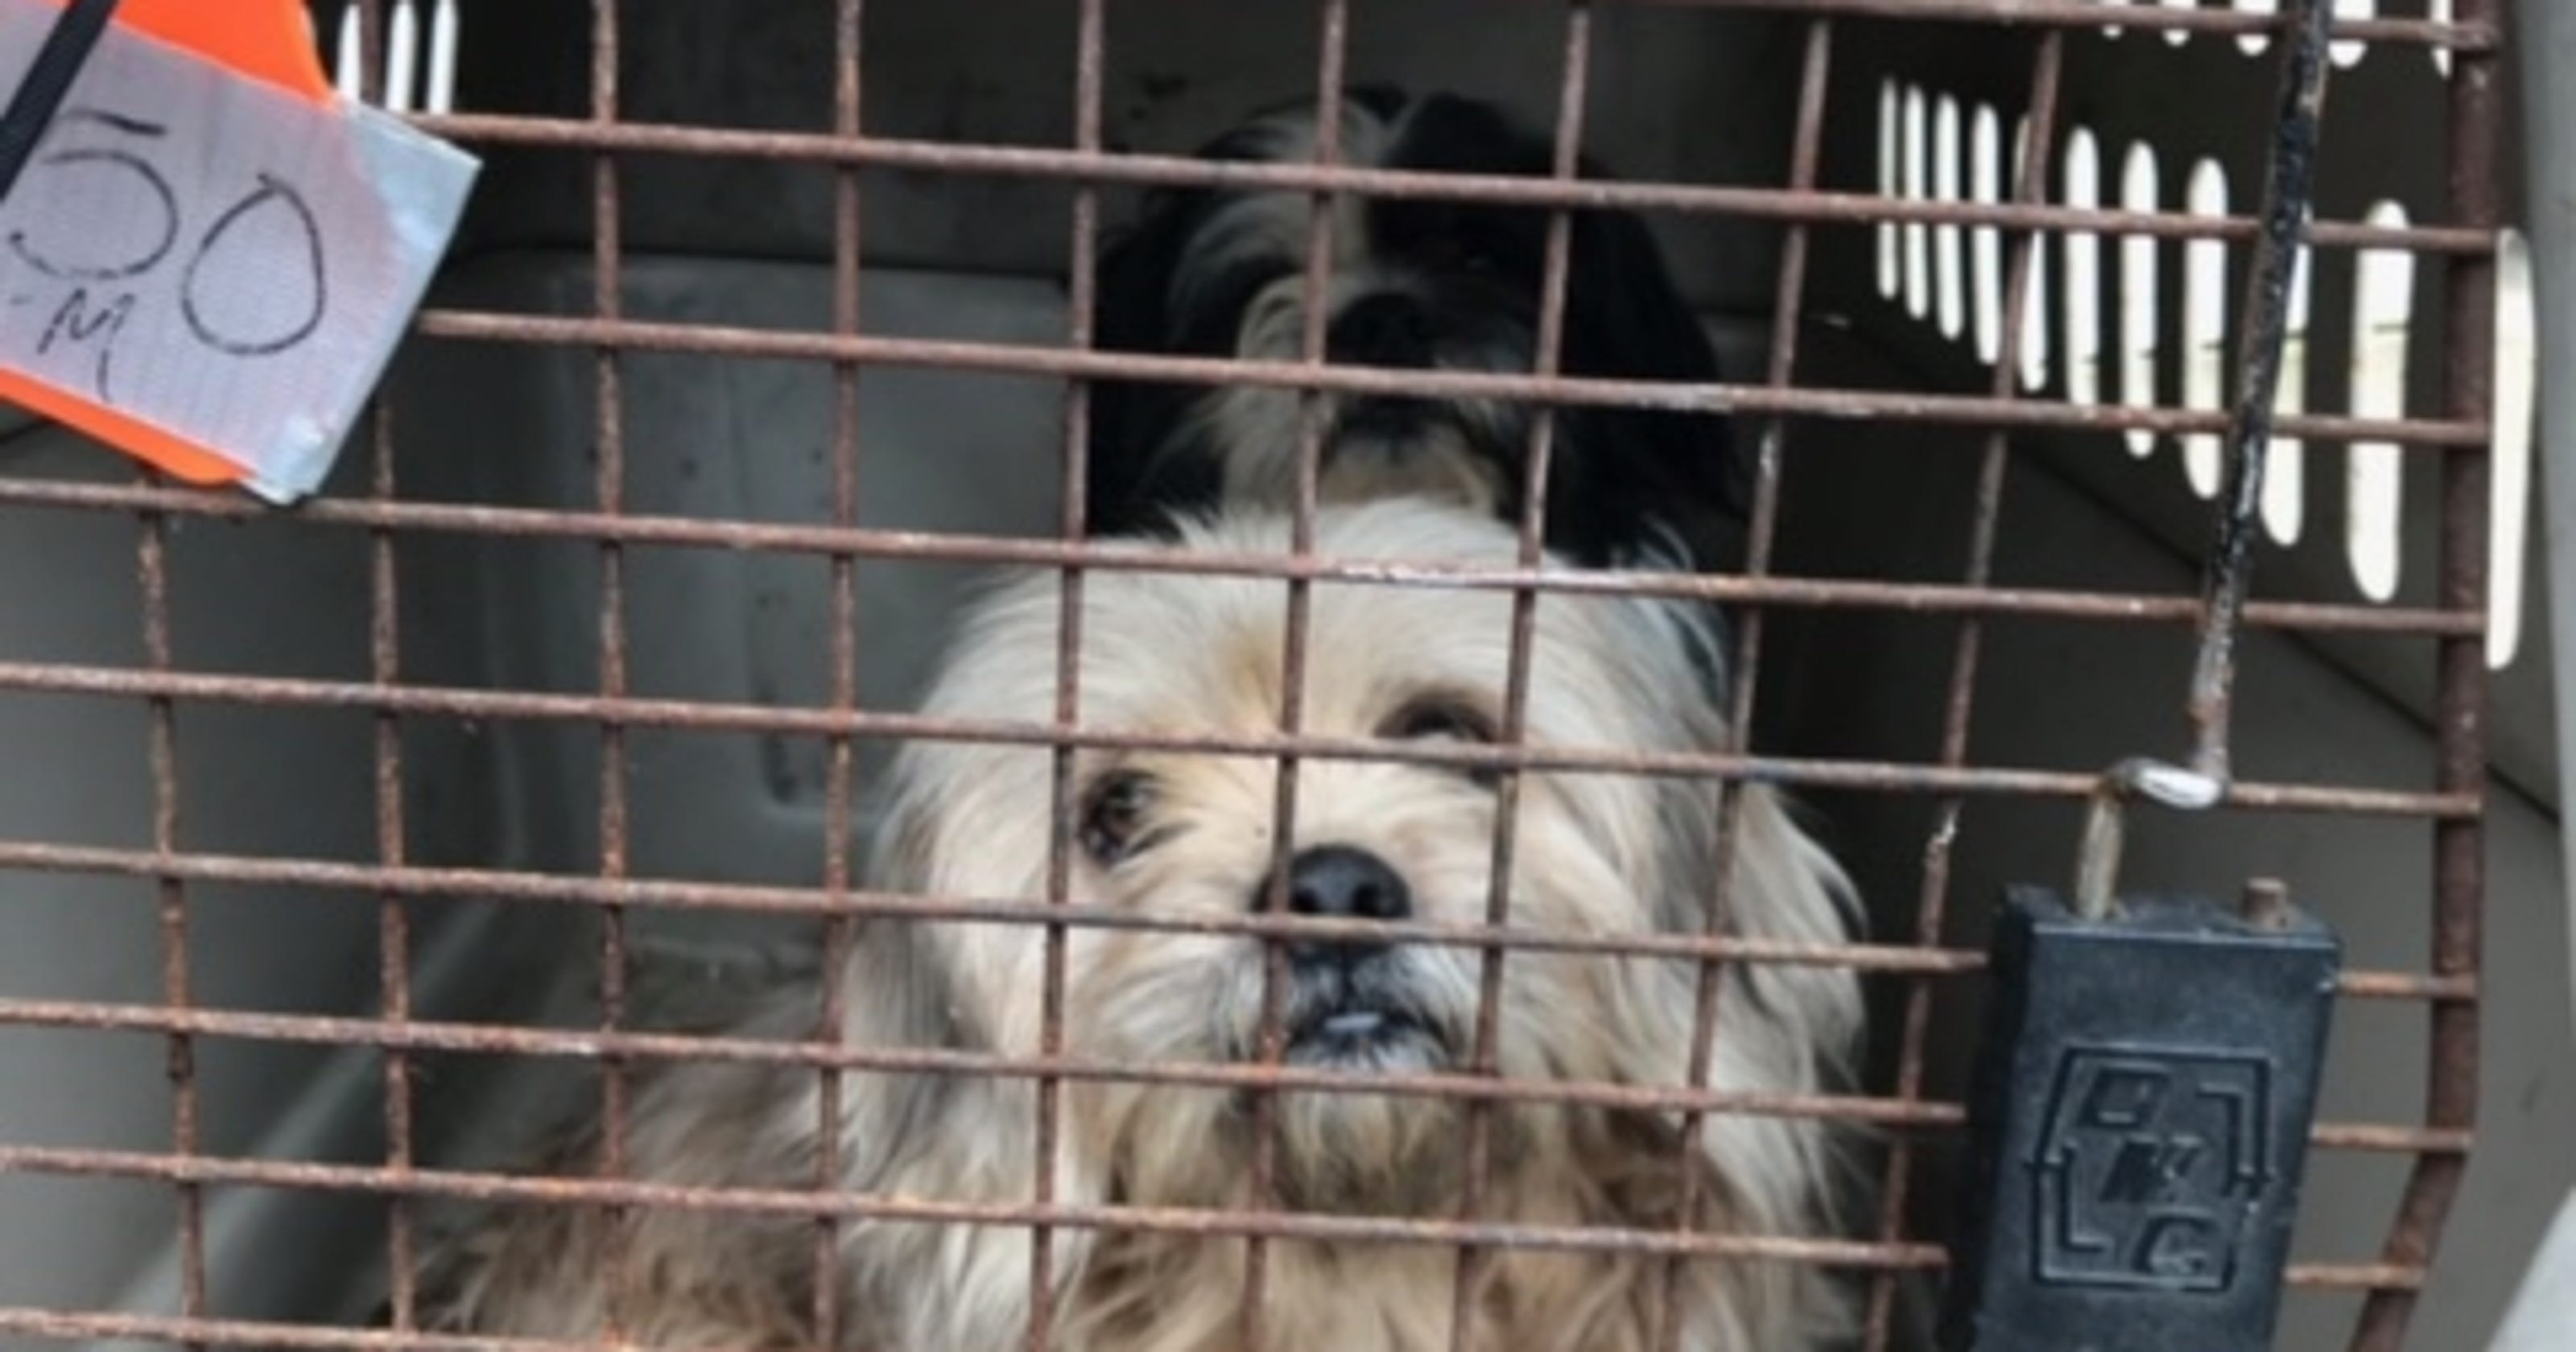 17 Shih Tzu and rat terrier mixes saved in Indiana animal